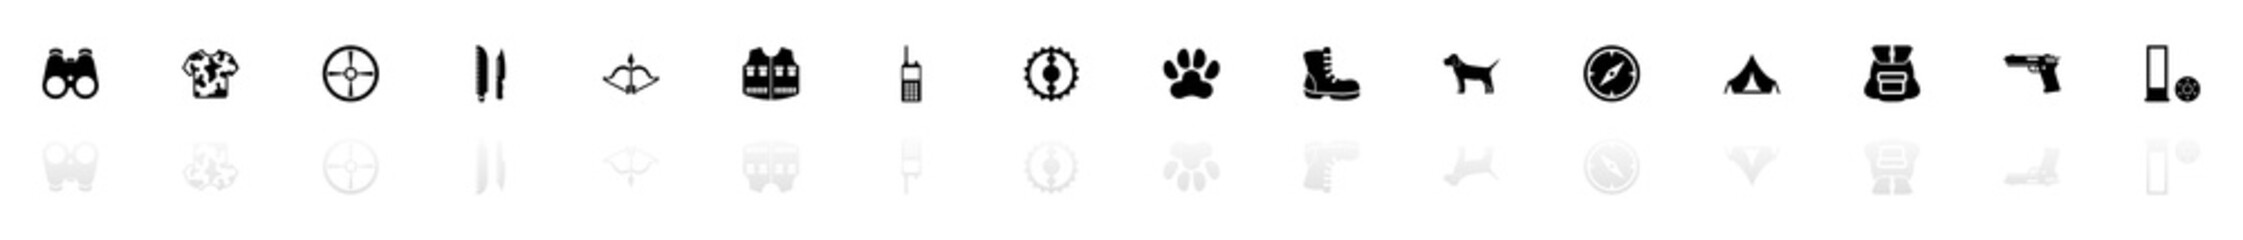 Hunting icons - Black horizontal Illustration symbol on White Background with a mirror Shadow reflection. Flat Vector Icon.